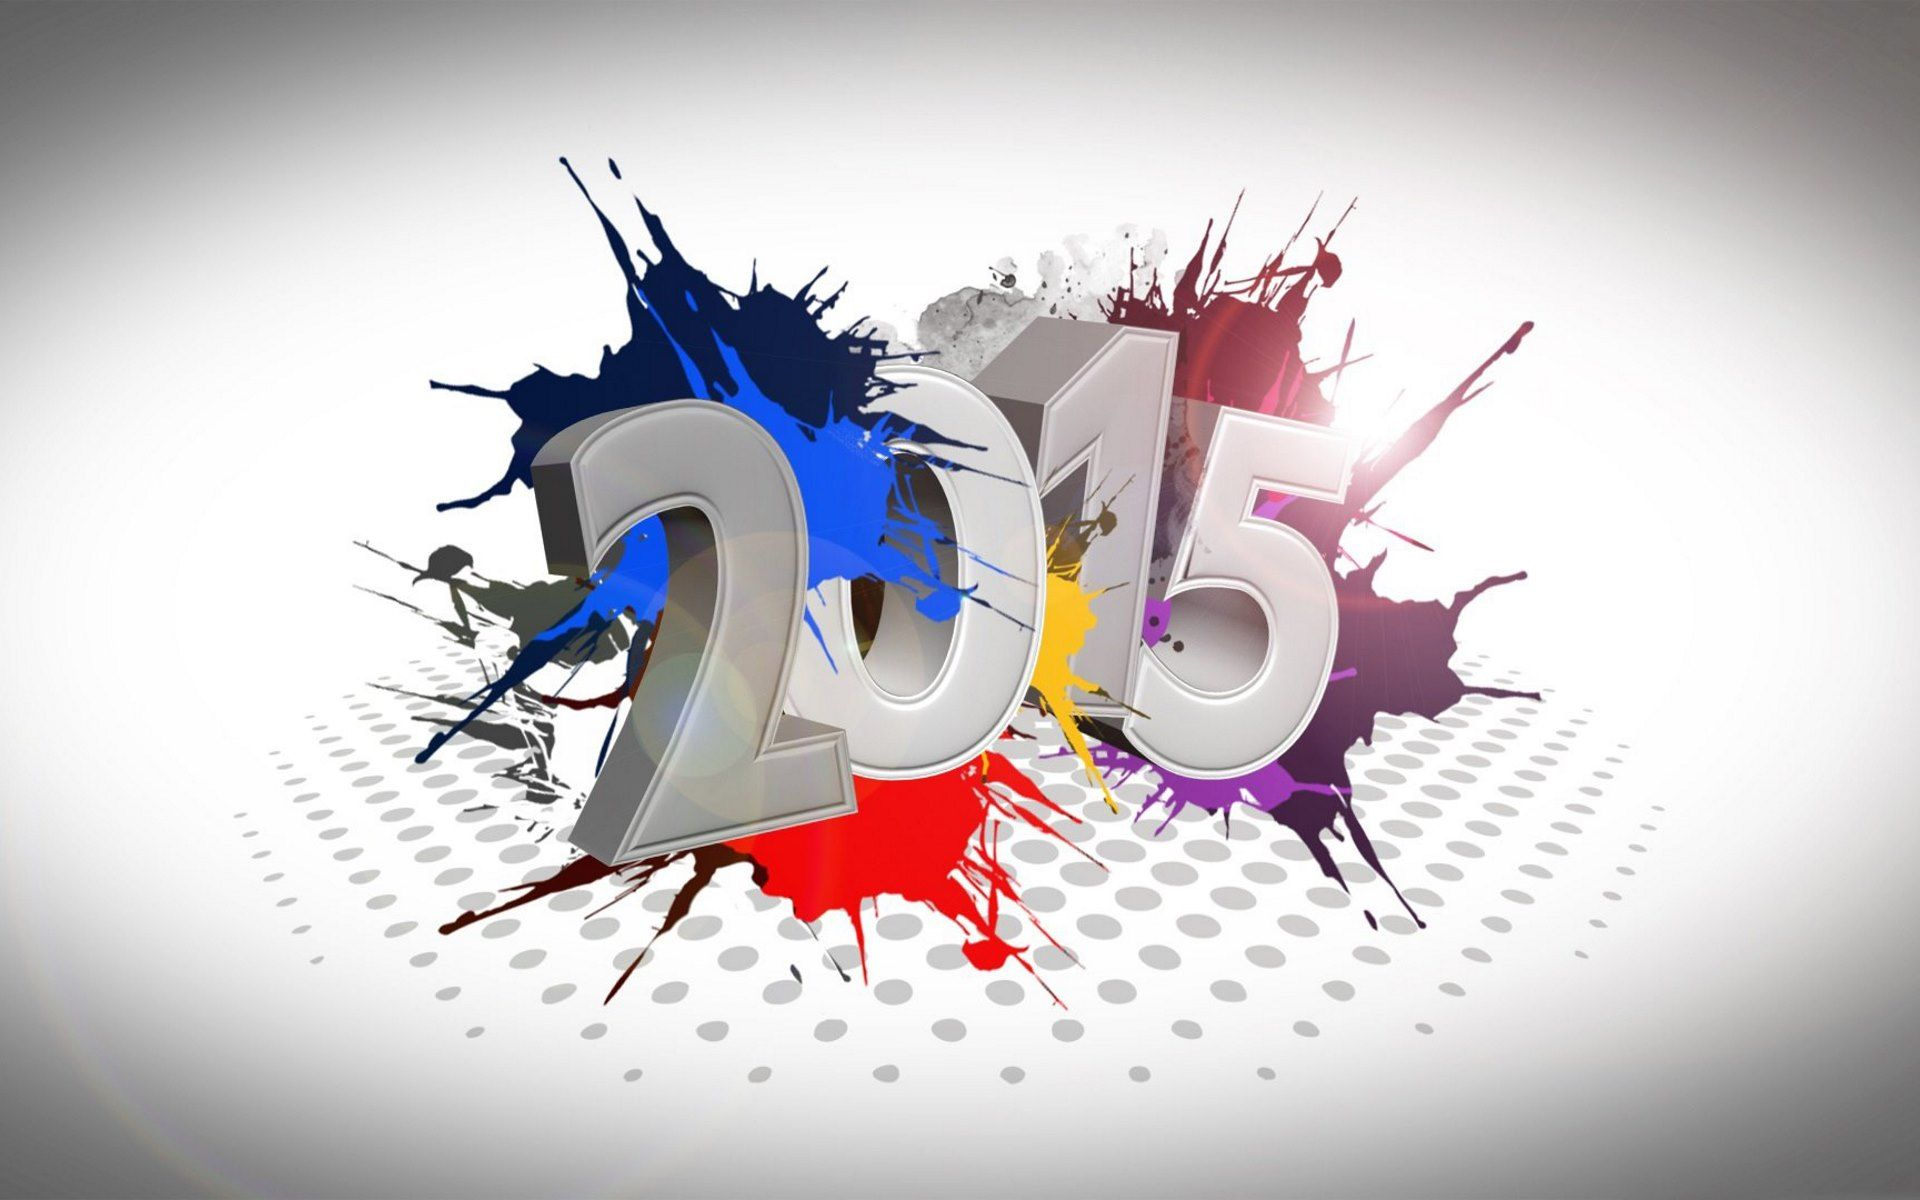 Pin By Melody Kai On Here We Go 2015 Happy New Year Wallpaper